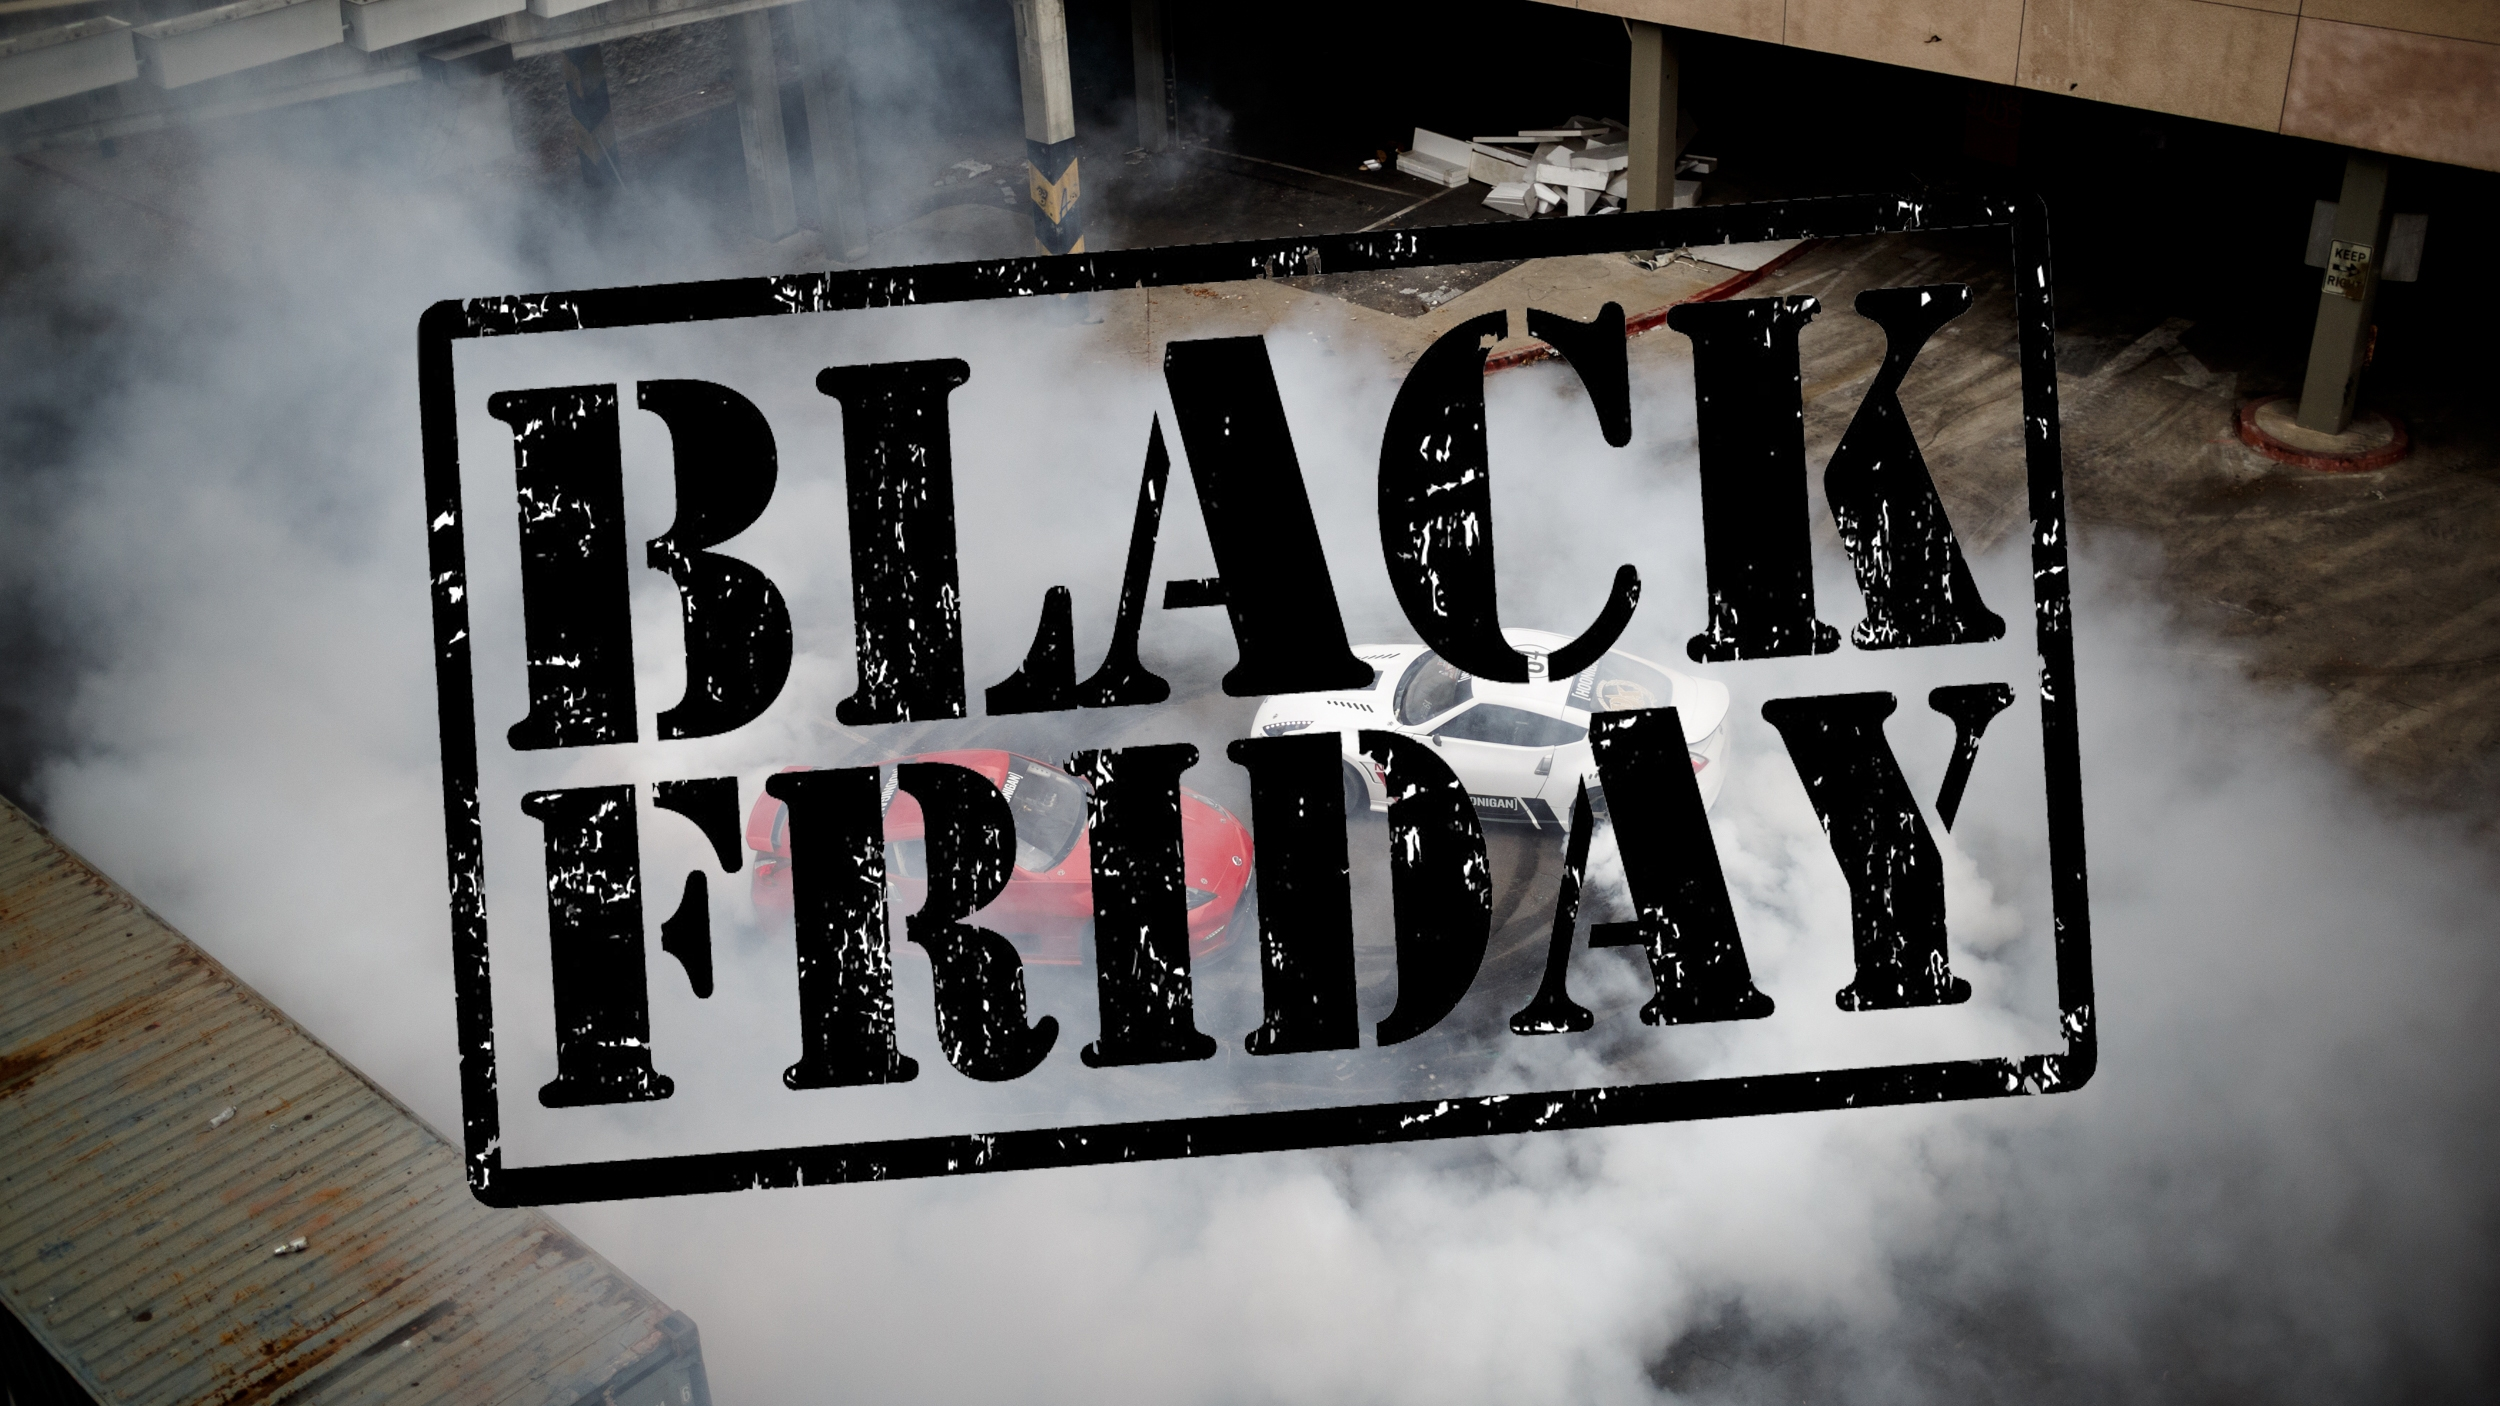 Random Black Friday Deals And Gift Ideas From Amazon For ...